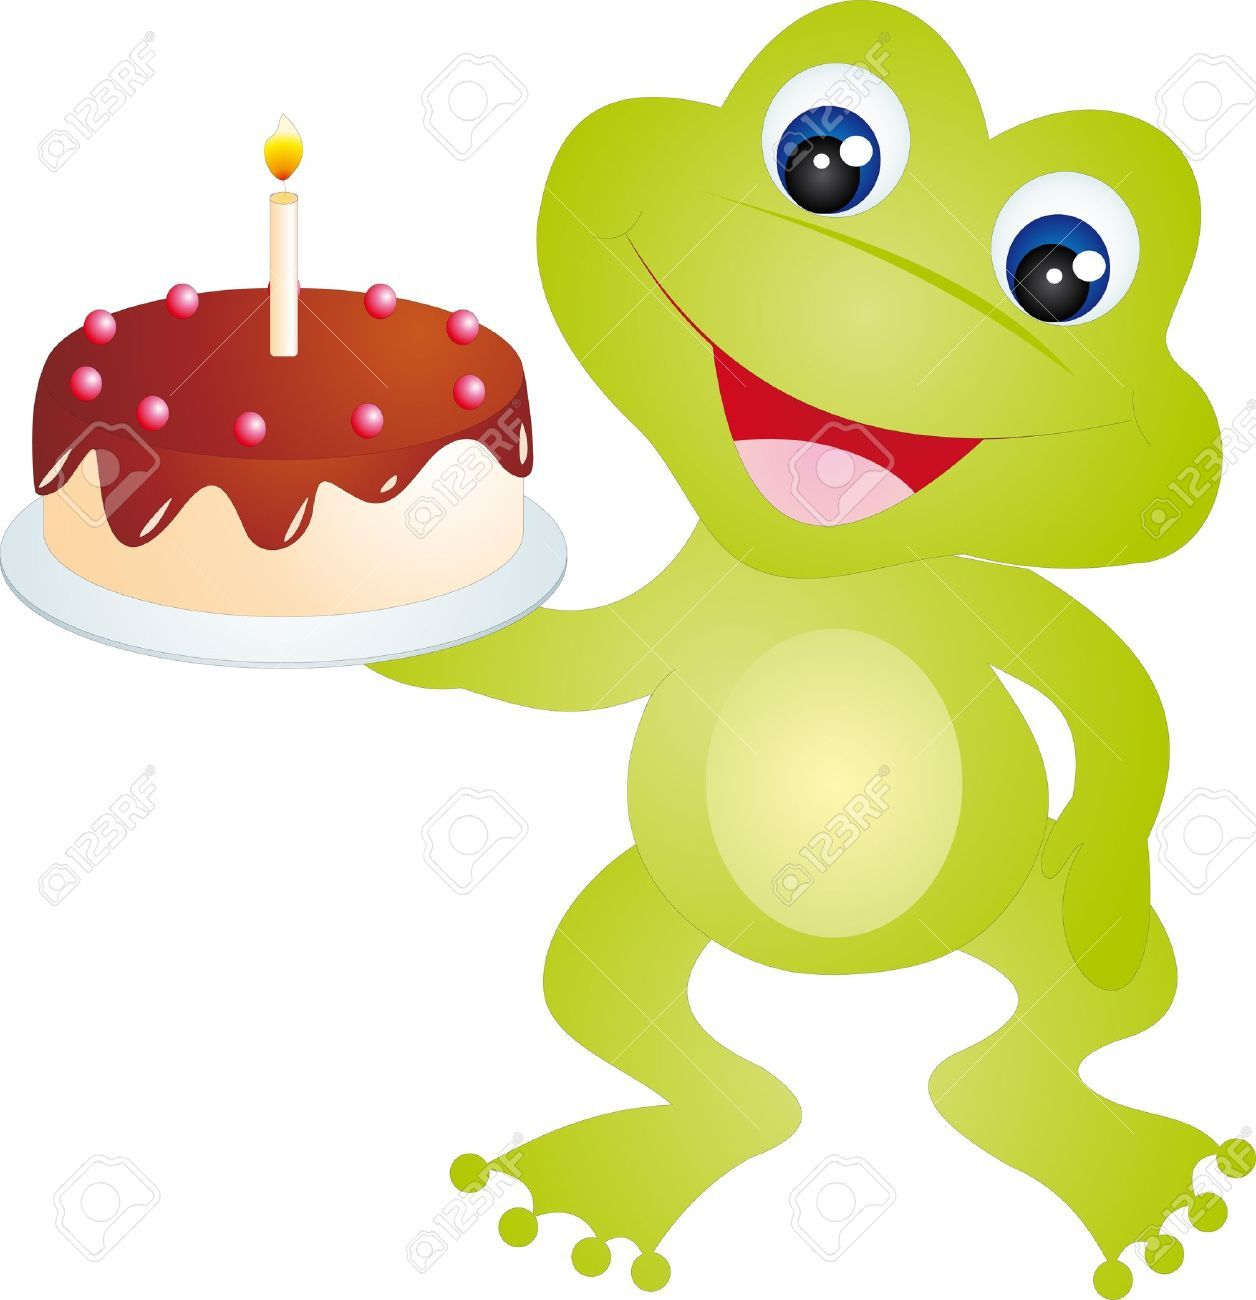 frog vector royalty free cliparts vectors and stock illustration rh pinterest com